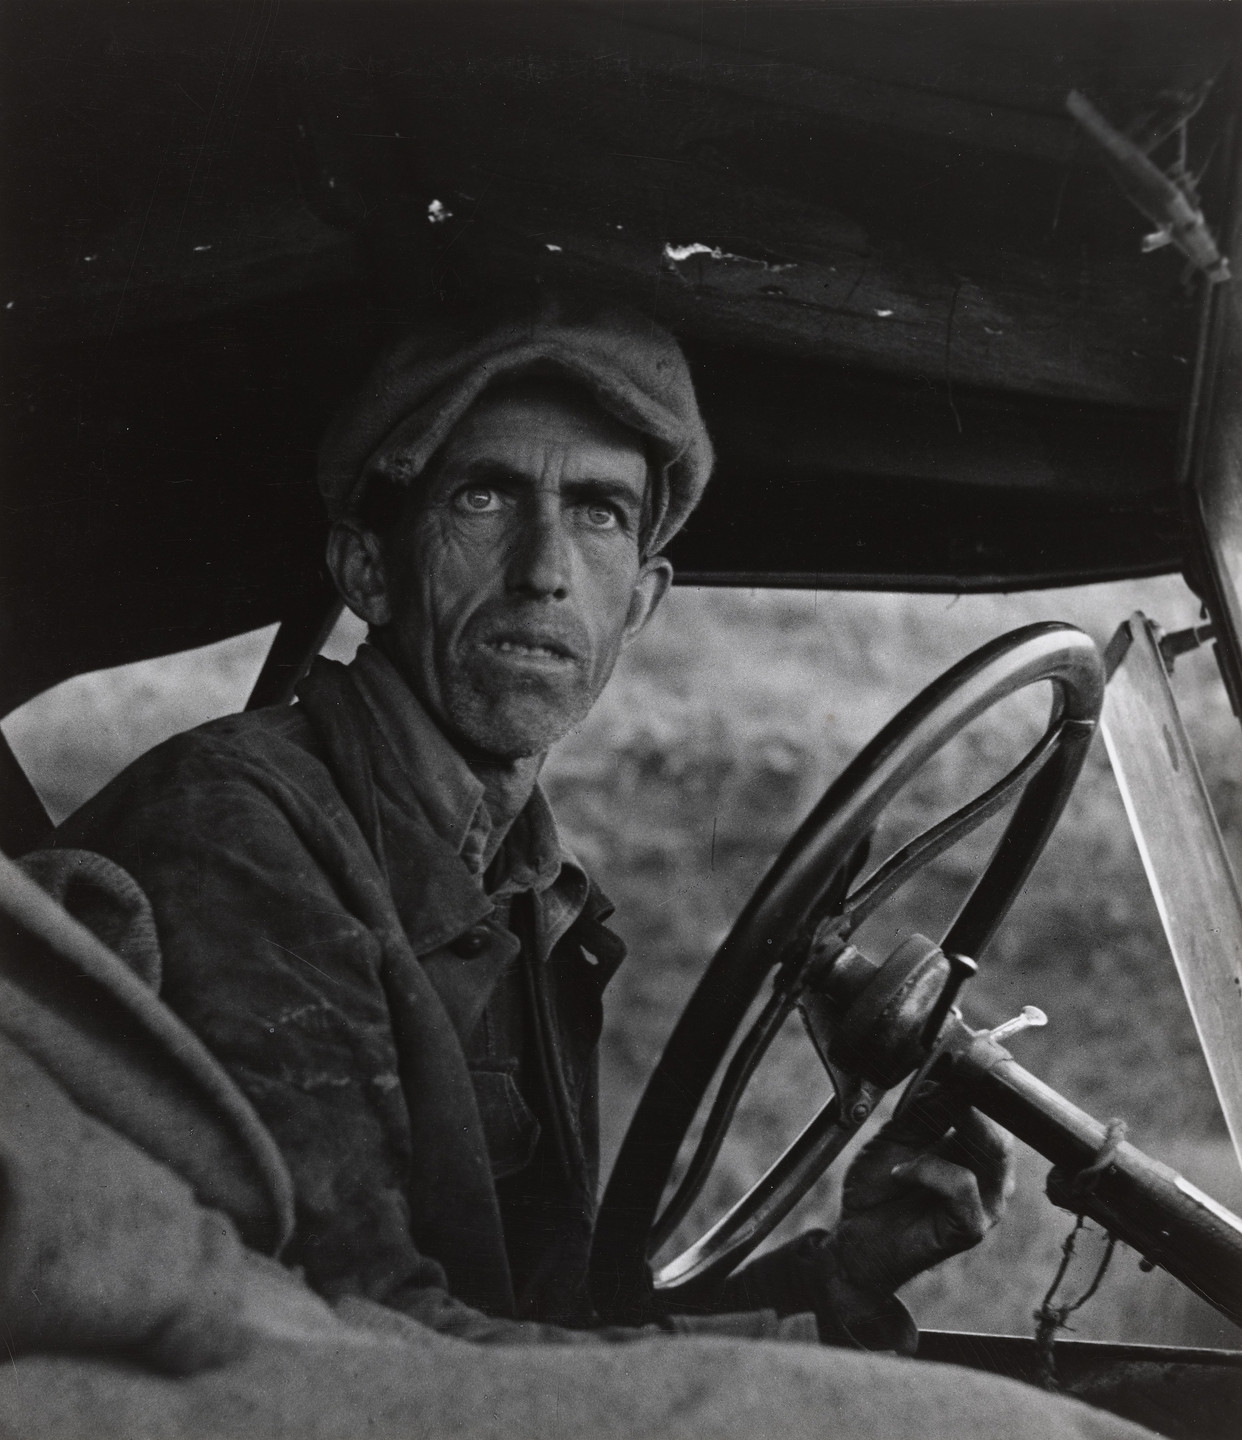 Dorothea Lange. Ditched, Stalled and Stranded, San Joaquin Valley, California. February 1936